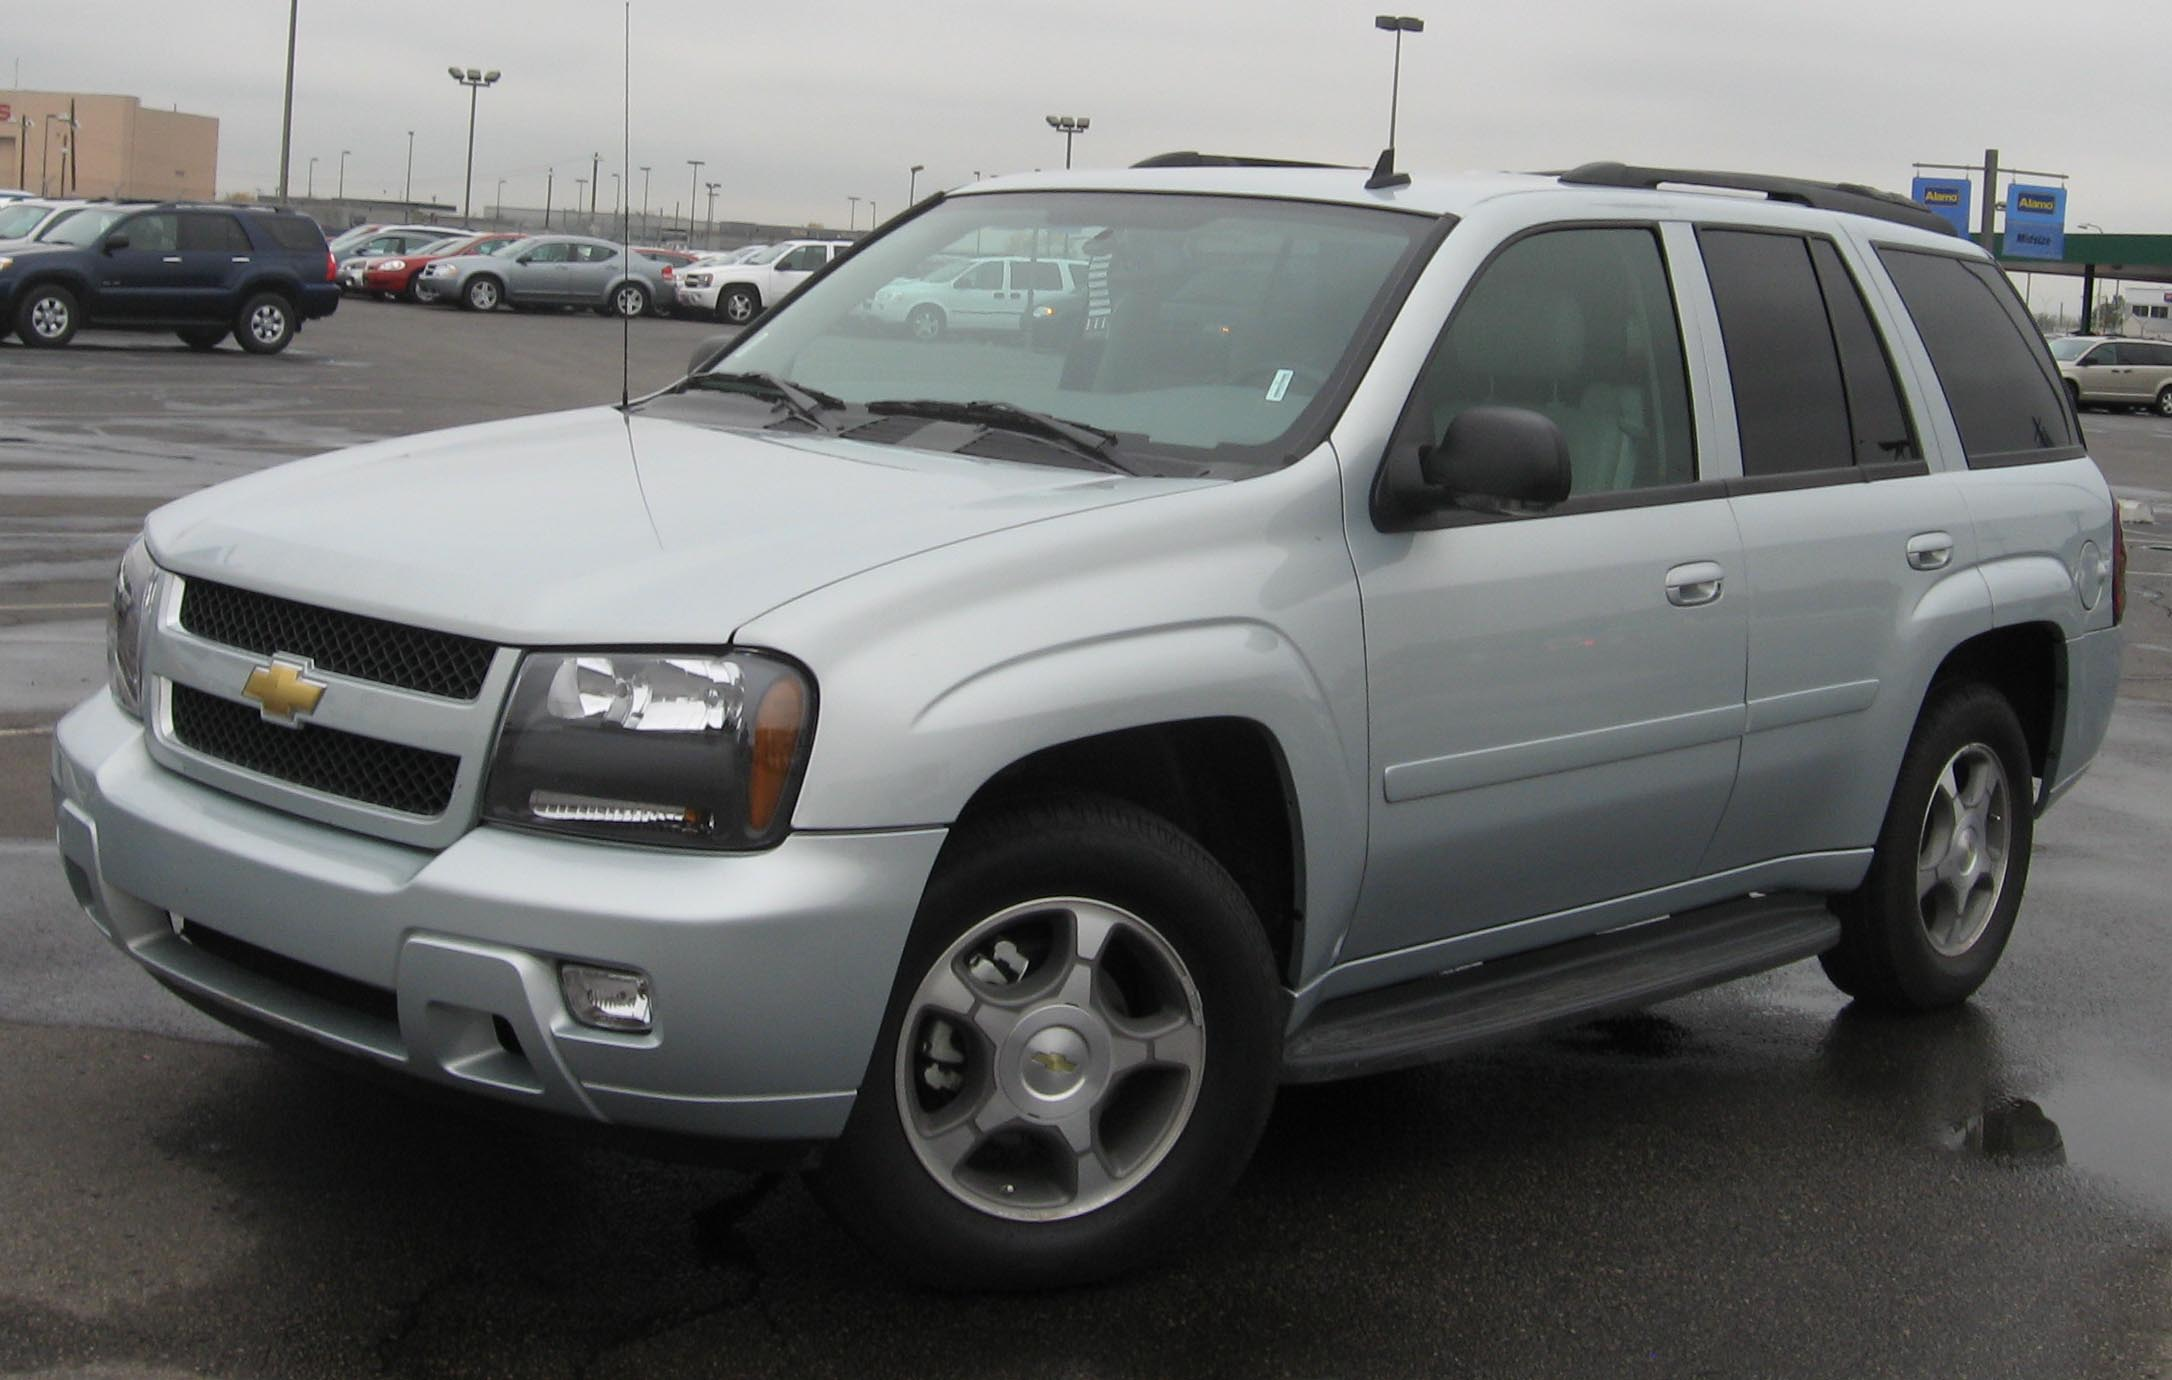 Chevrolet TrailBlazer 2008 #2